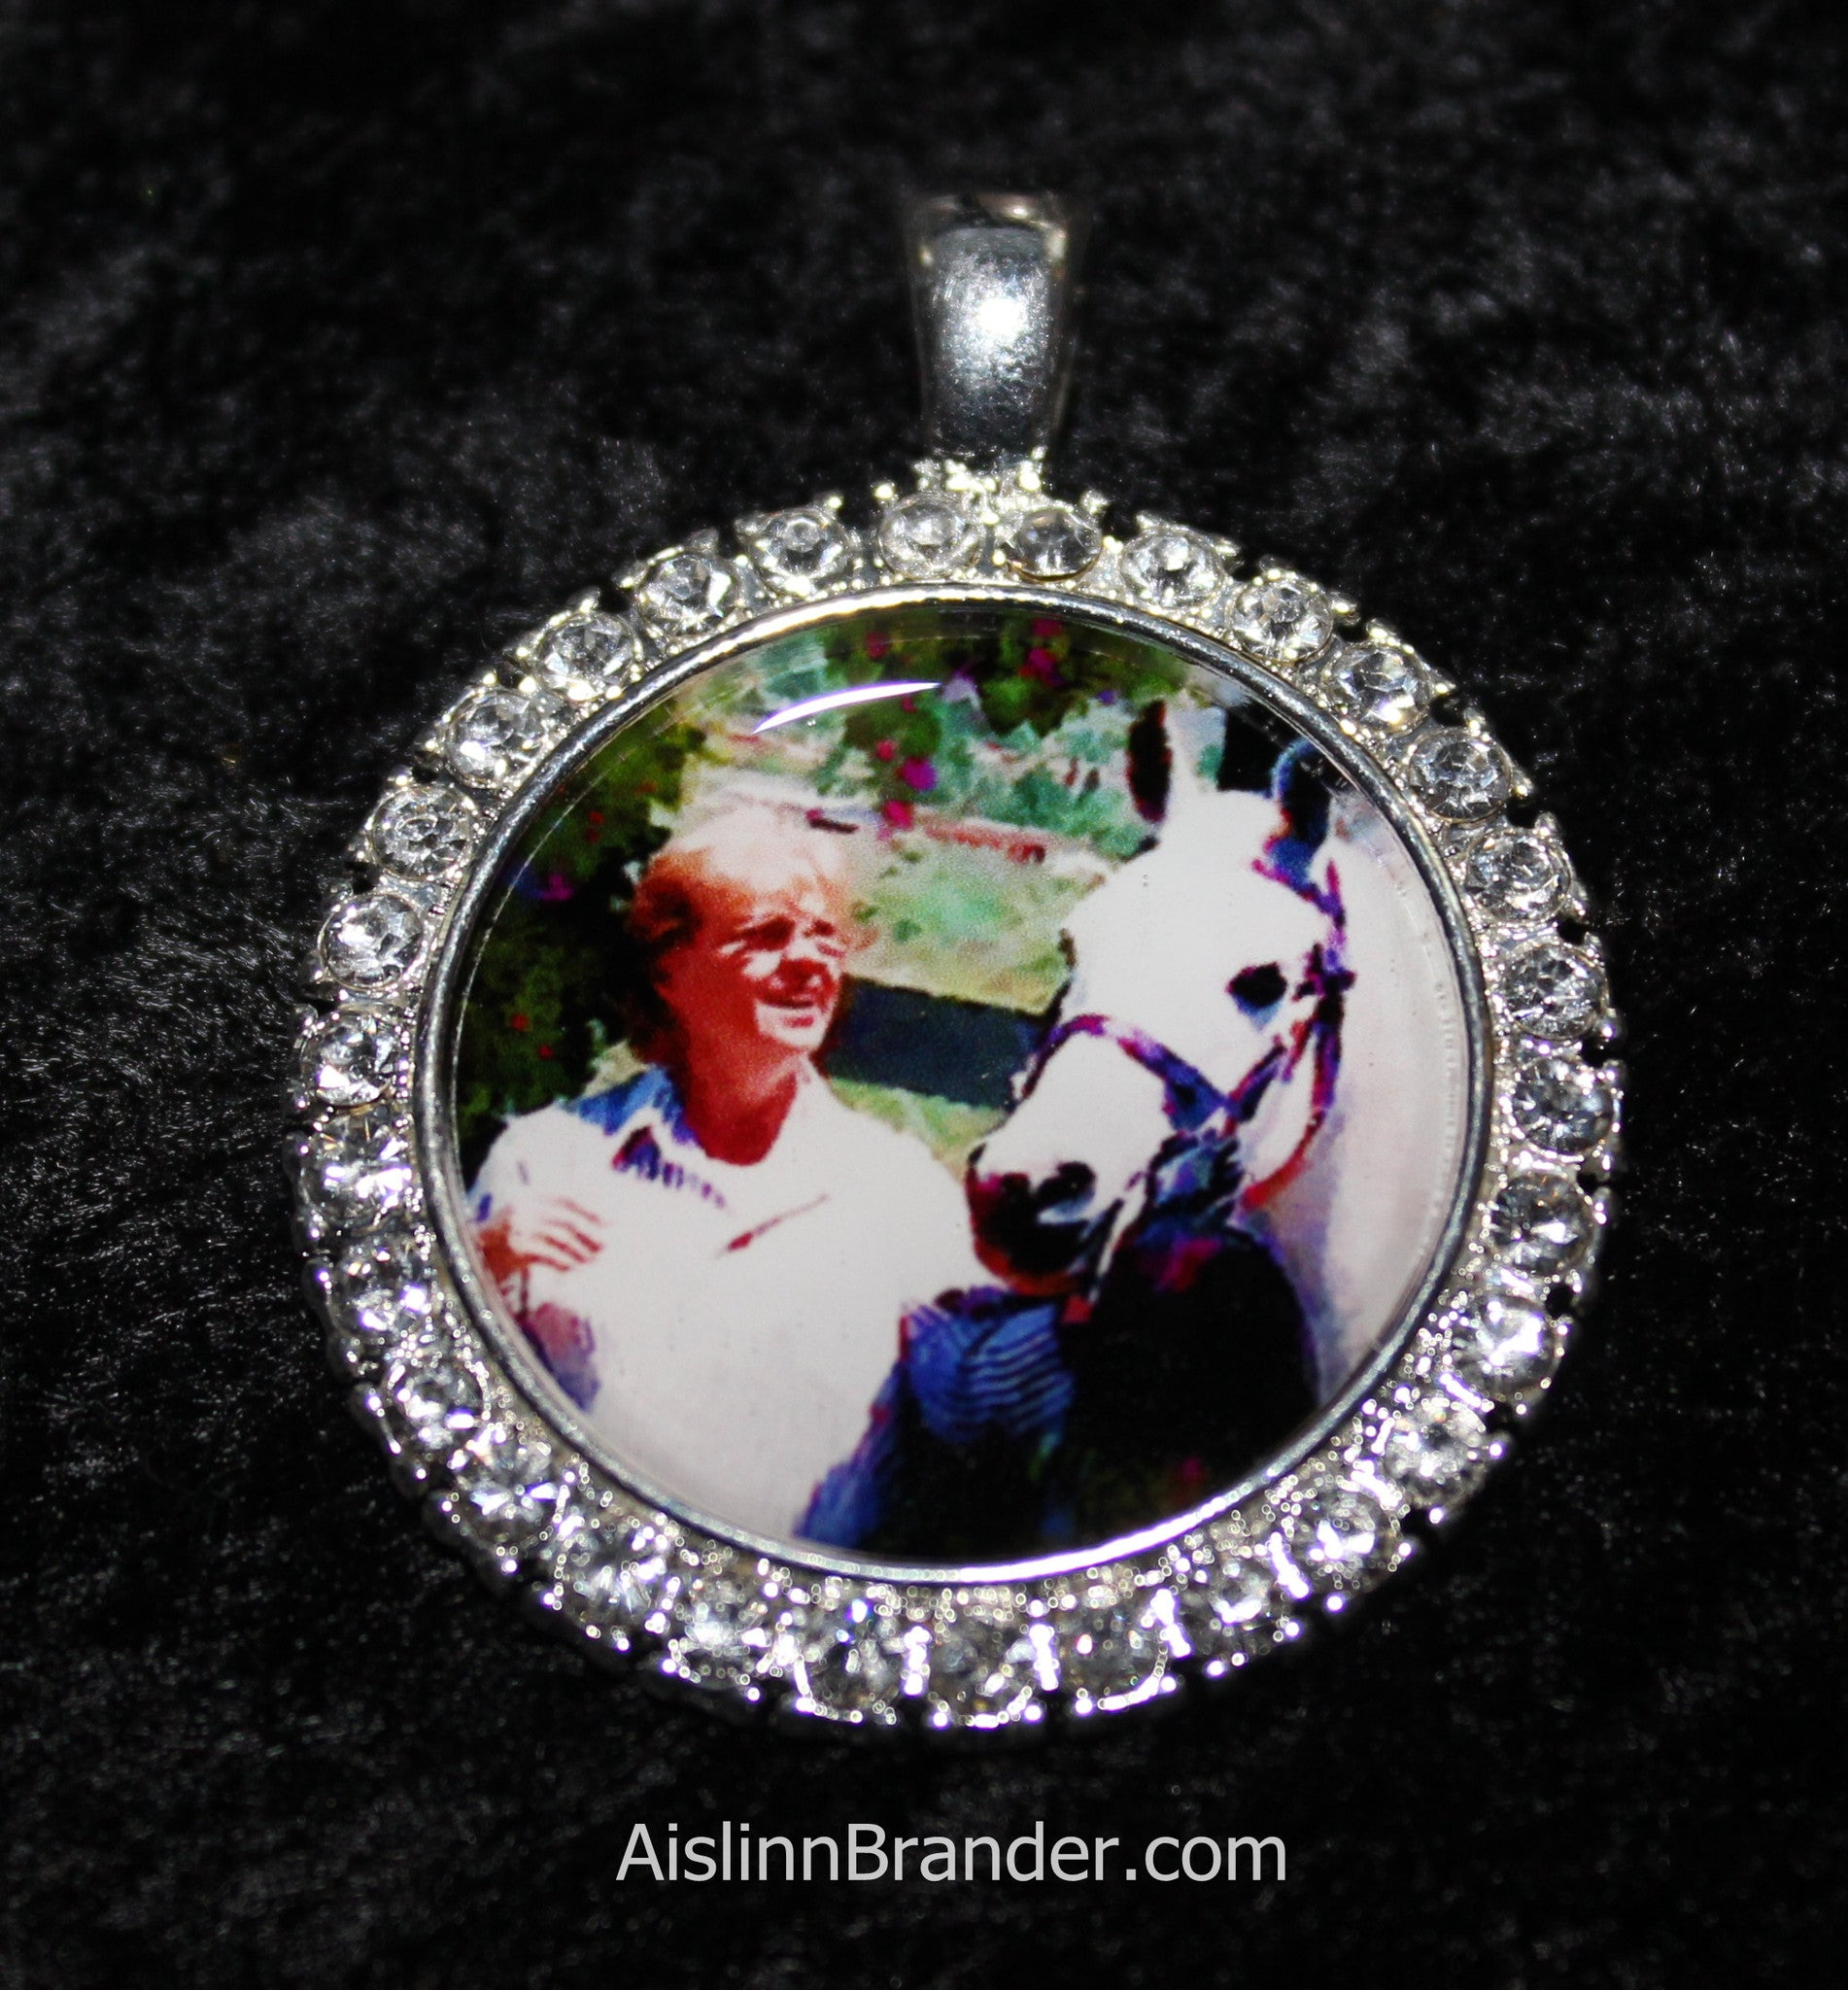 RhineStone Personalized Photo Jewelry